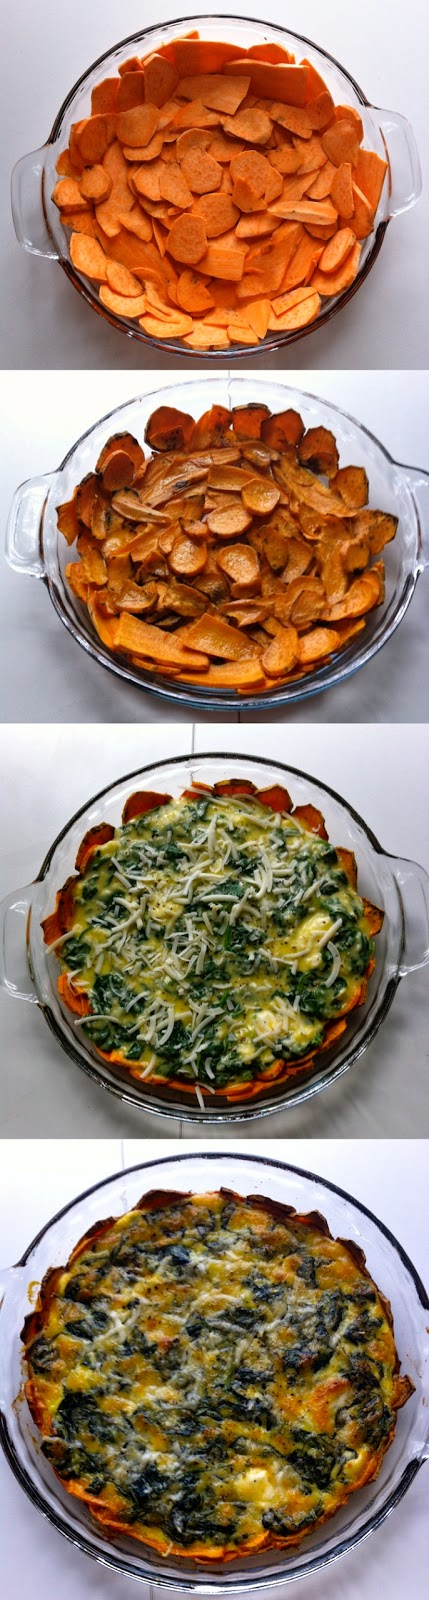 48_sweet_potato_crusted_spinach_quiche